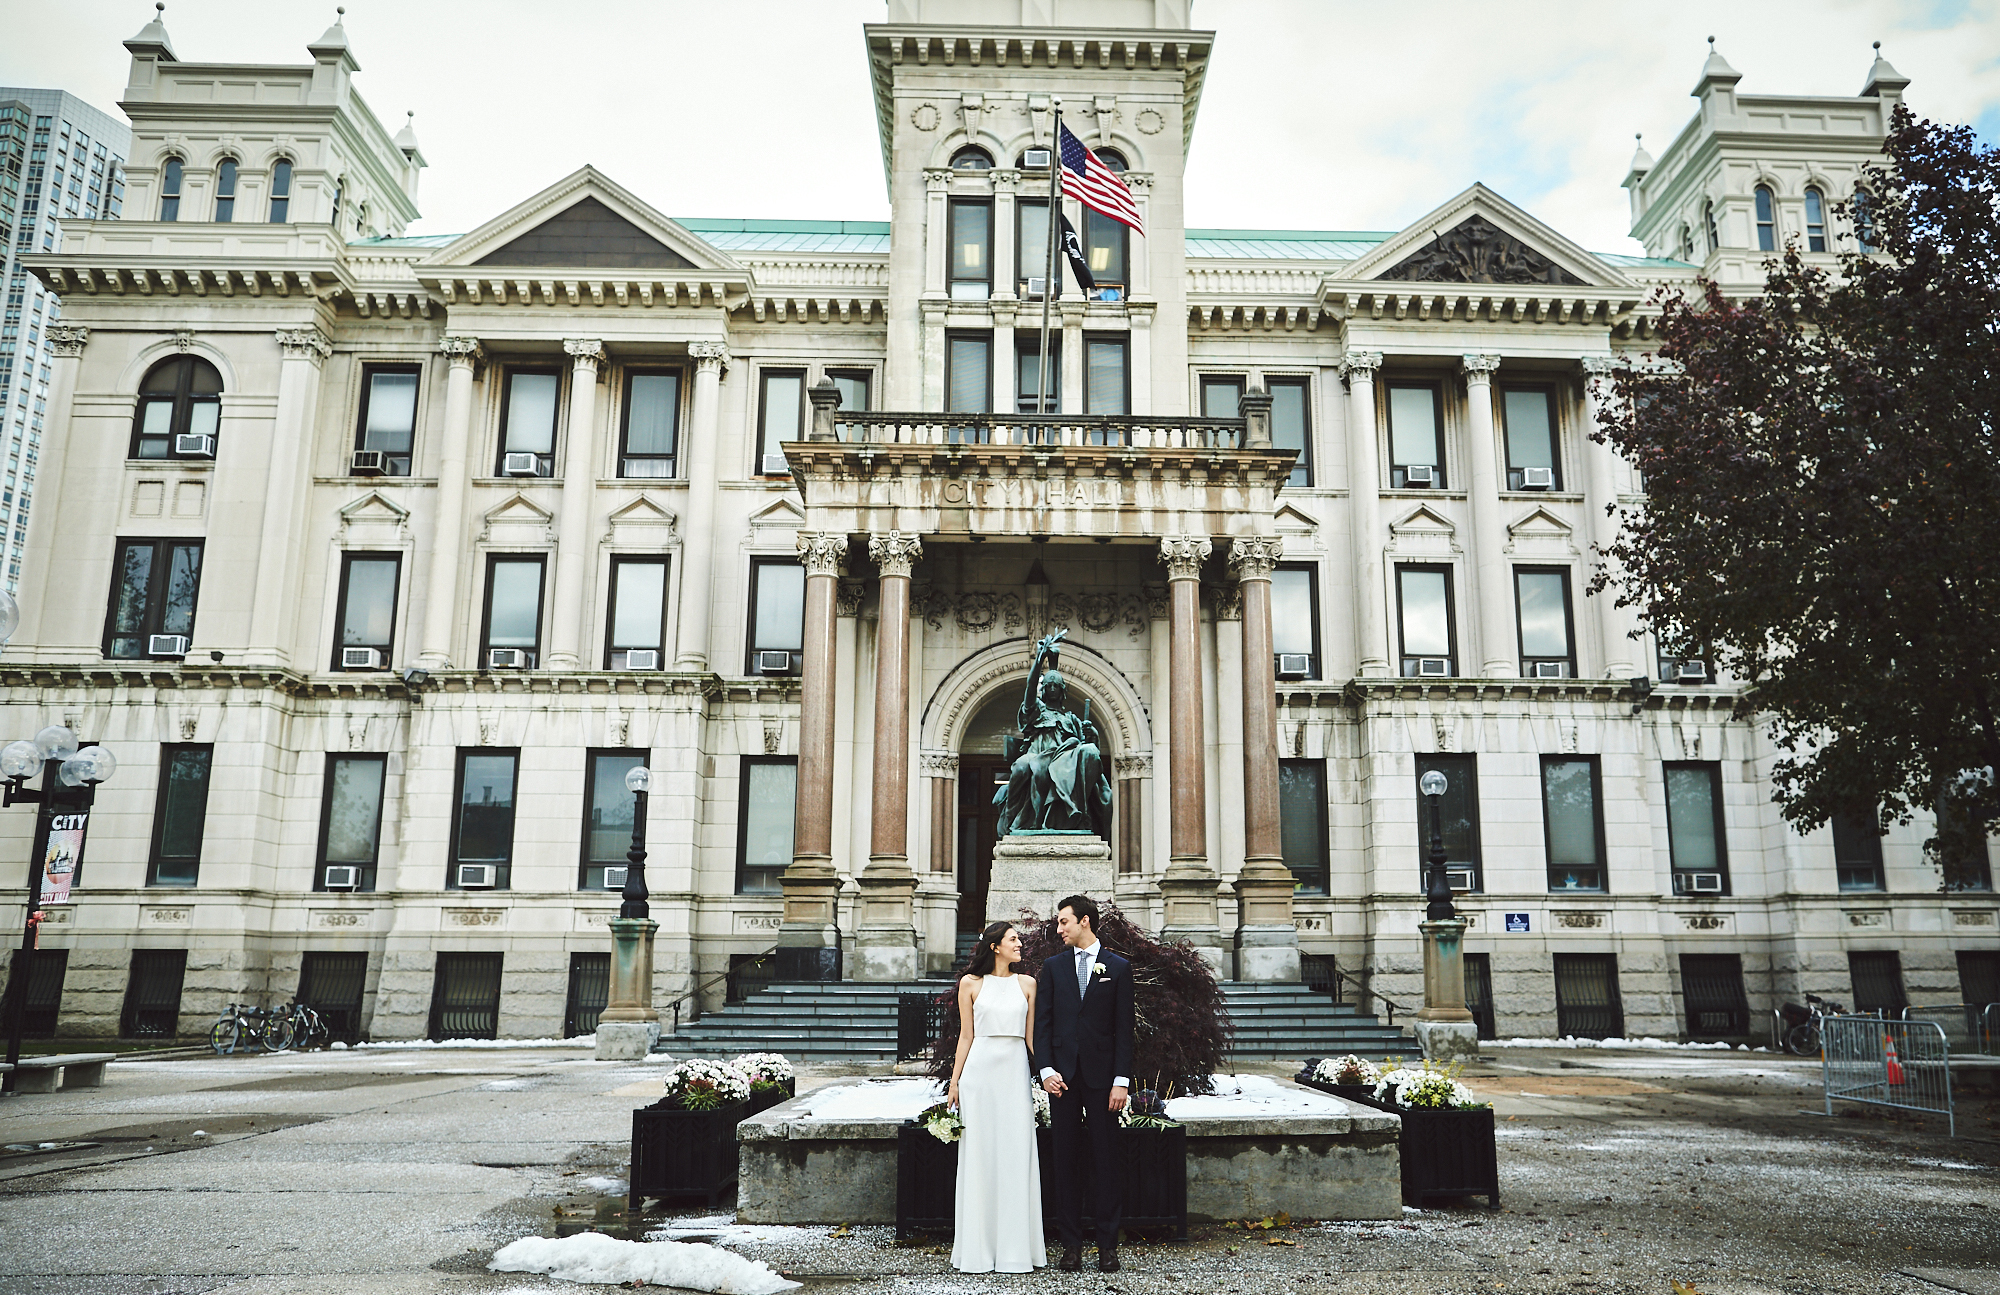 181116_JerseyCityCityHallFallWeddingPhotography_JerseyCityWeddingPhotographer_By_BriJohnsonWeddings_0048.jpg